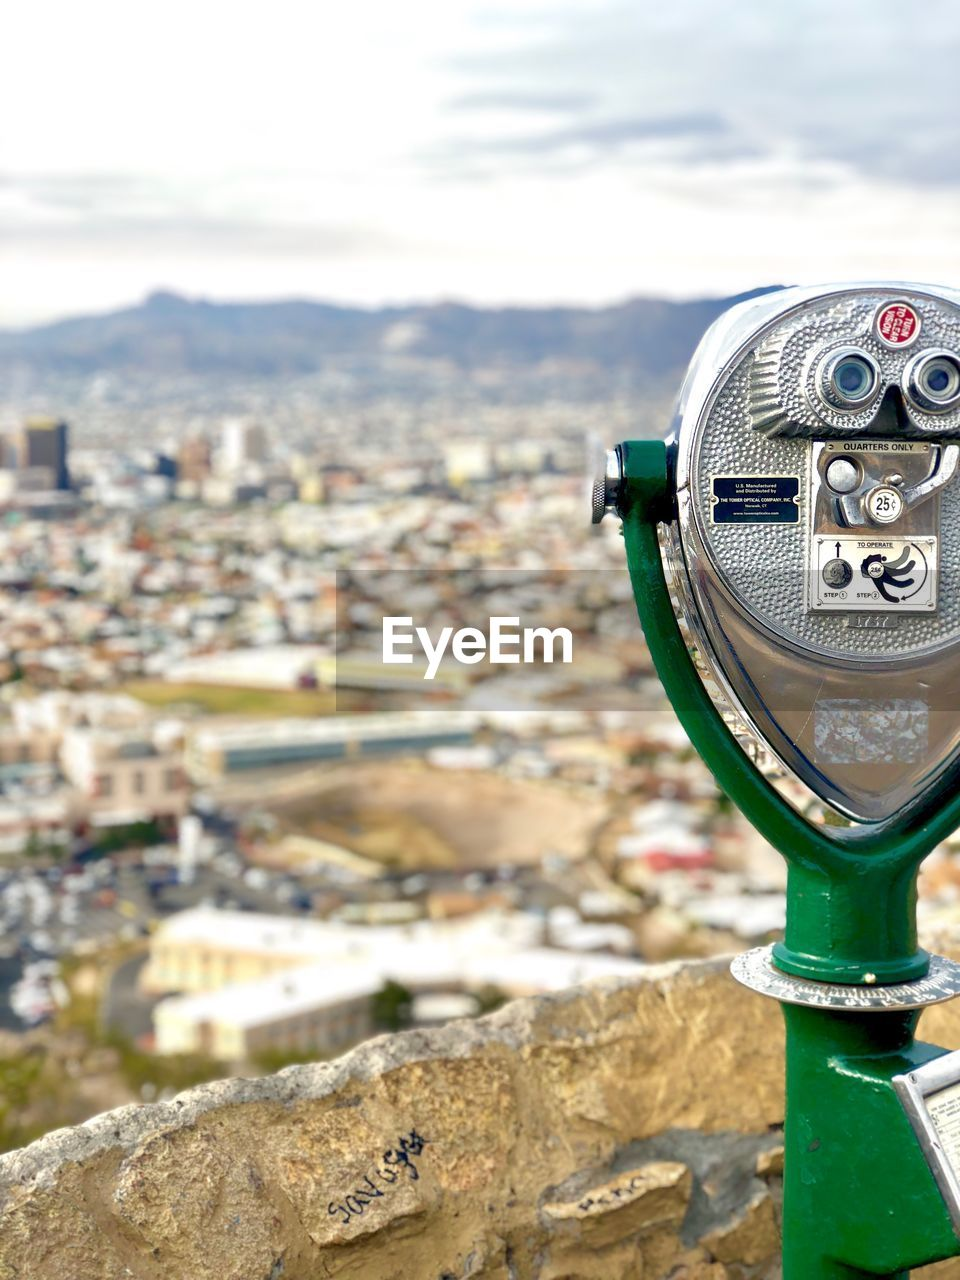 coin operated, binoculars, building exterior, city, architecture, focus on foreground, coin-operated binoculars, cityscape, built structure, day, sky, nature, close-up, no people, outdoors, building, metal, residential district, surveillance, hand-held telescope